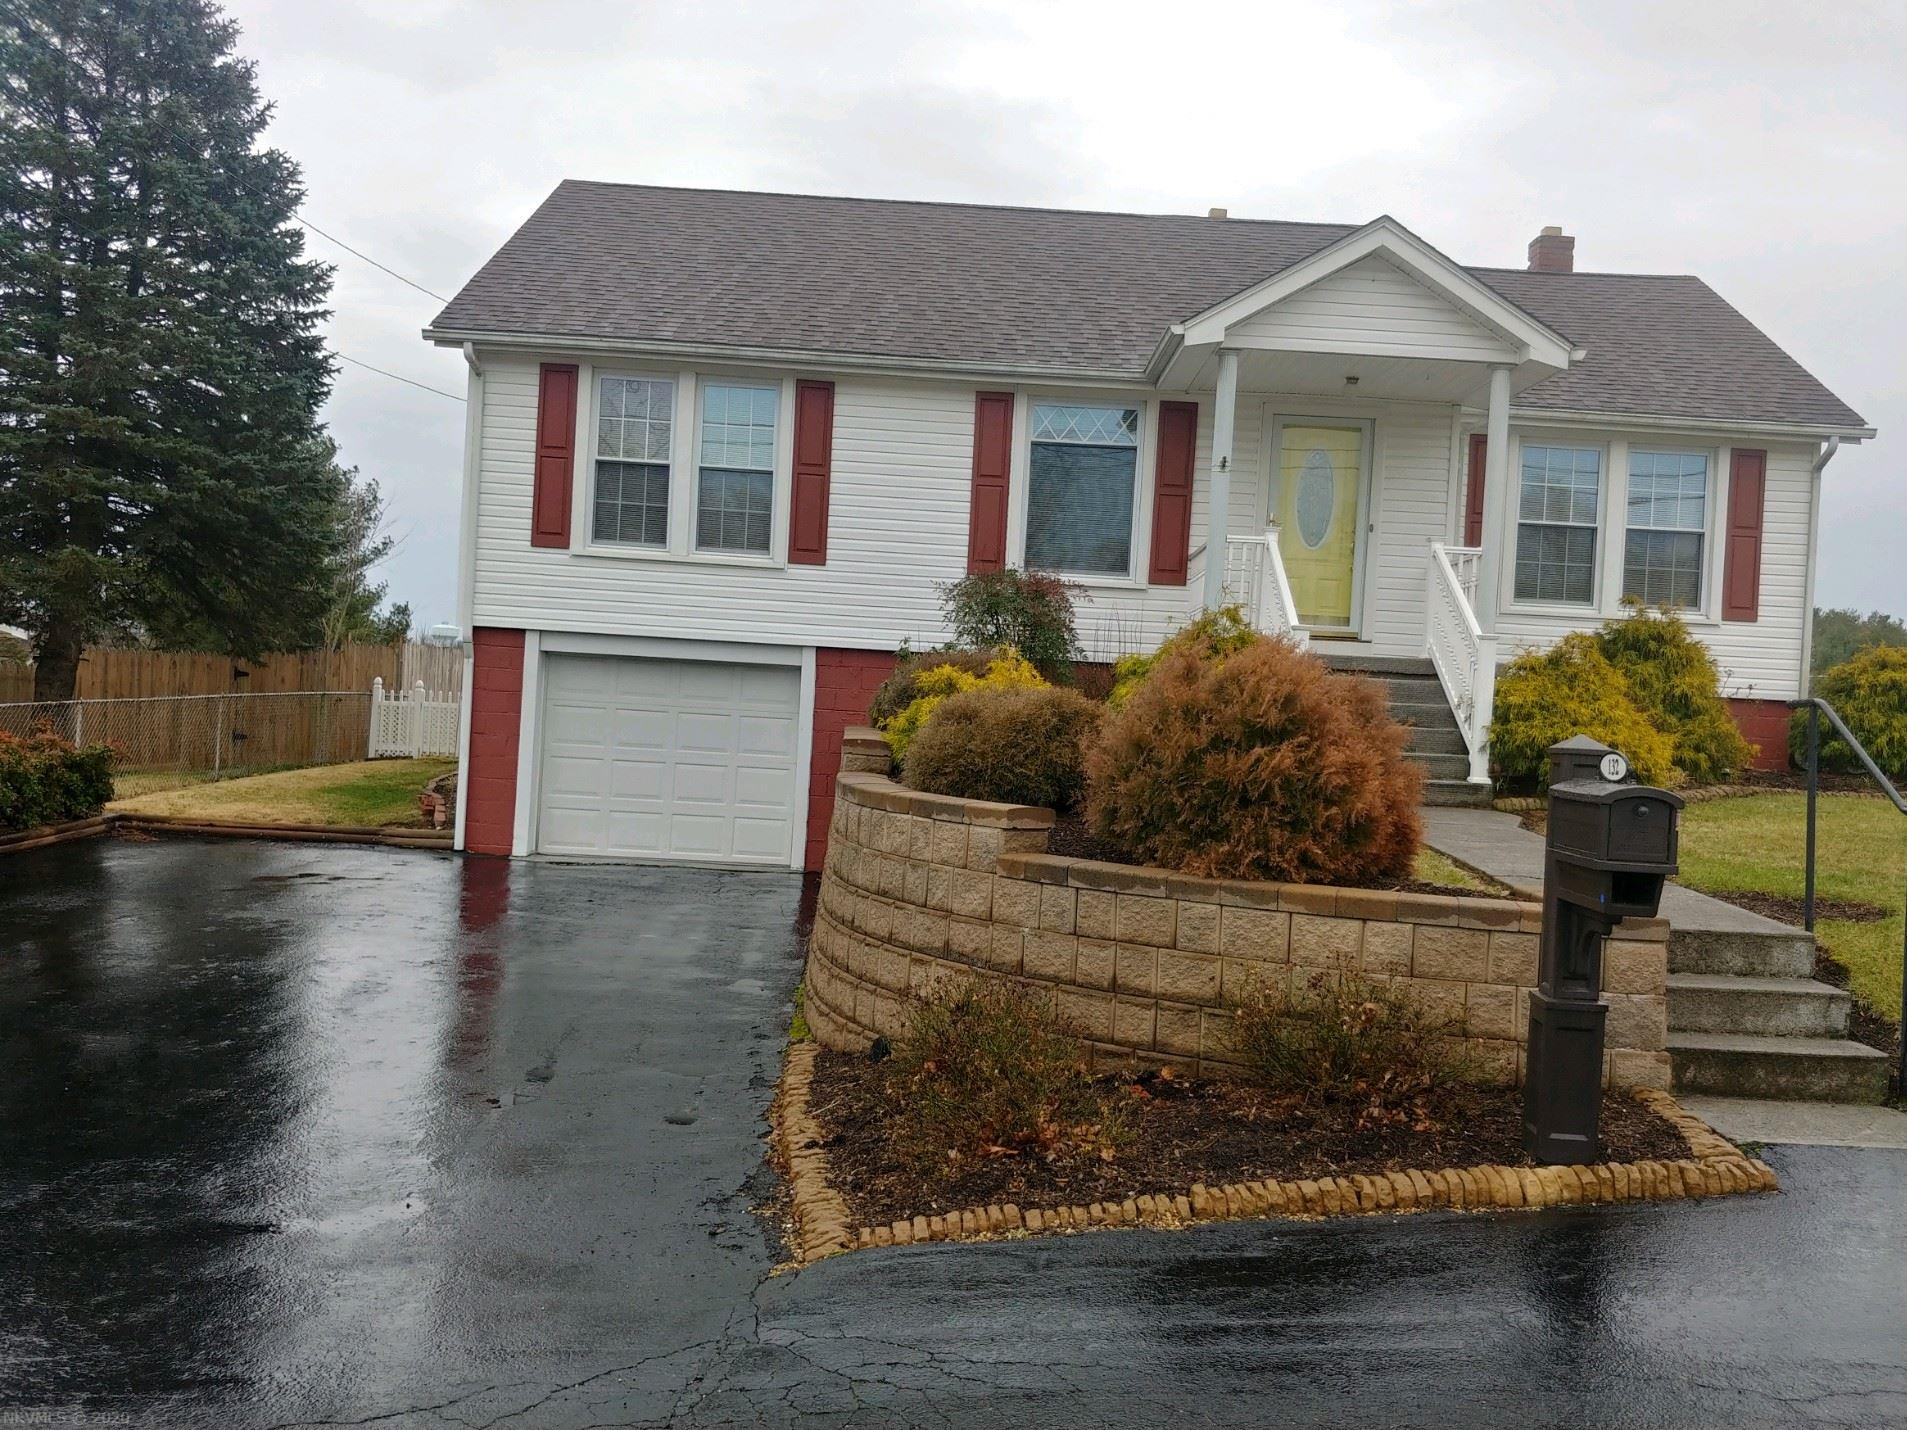 This home is a gem with great curb appeal.  Pride in ownership shows all through this lovely home with 3 bedrooms,  full bath with granite, living room, dining room, kitchen and sunroom all on the main level.  The park like backyard has beautiful landscaping and two storage buildings. The second floor has a lot to offer with 2 more rooms and second full bath with storage.  The full basement has 2 additional rooms that could be family room or man cave and heated garage Loads of storage.  Both stairs have Acorn Stair lifts that convey and central vacuum through out the home and garage.